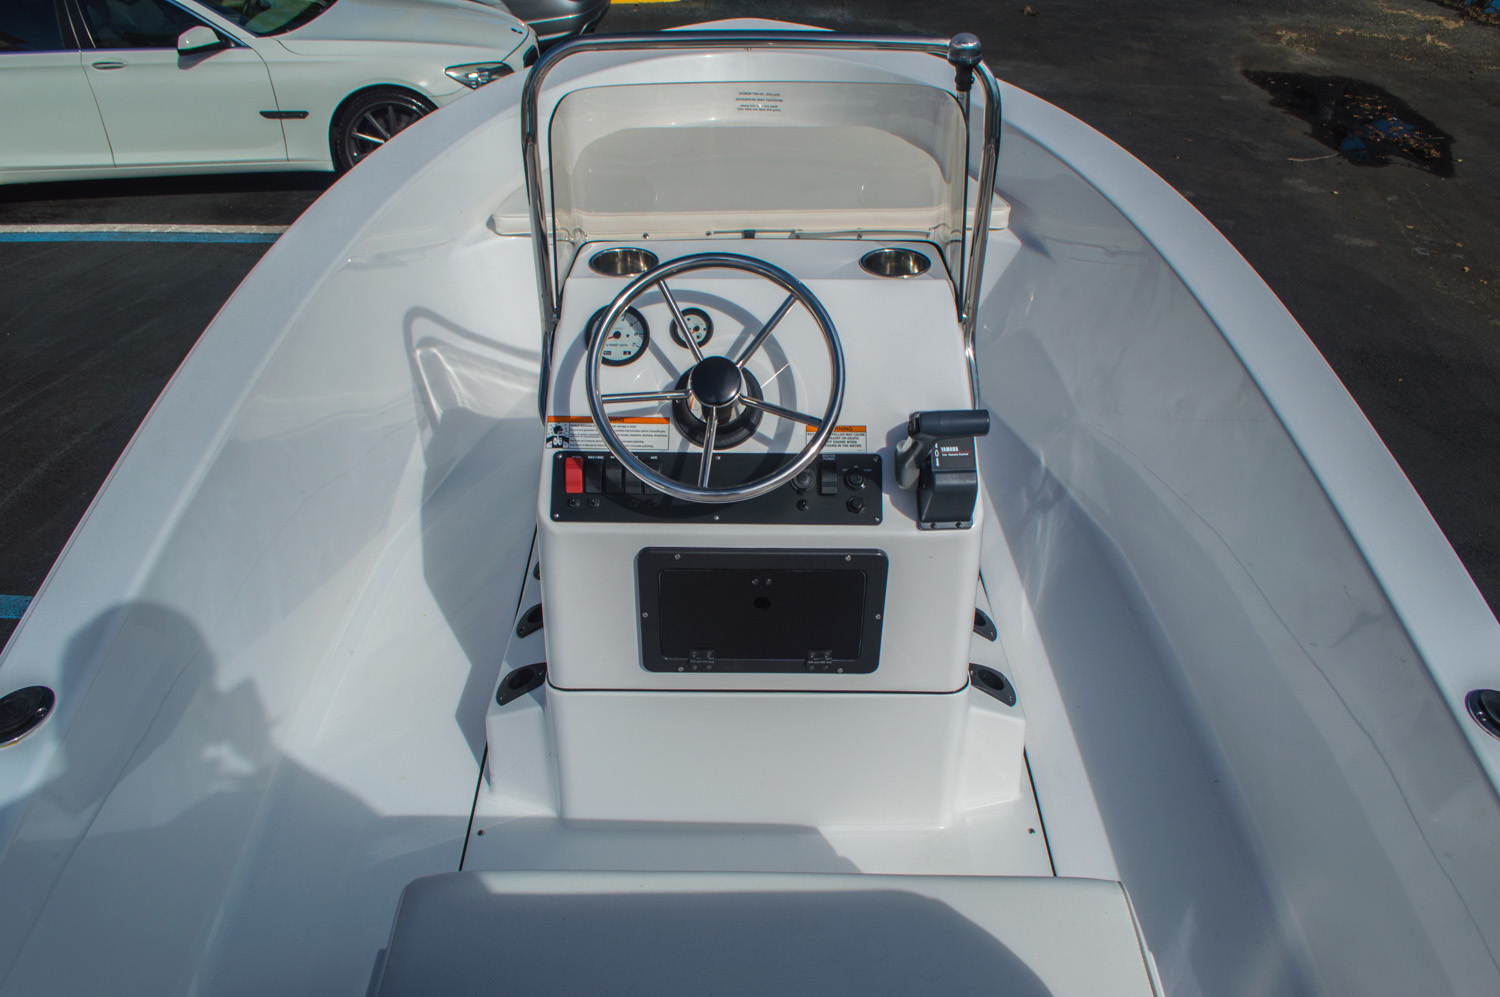 Thumbnail 10 for New 2016 Sportsman 17 Island Reef boat for sale in Vero Beach, FL